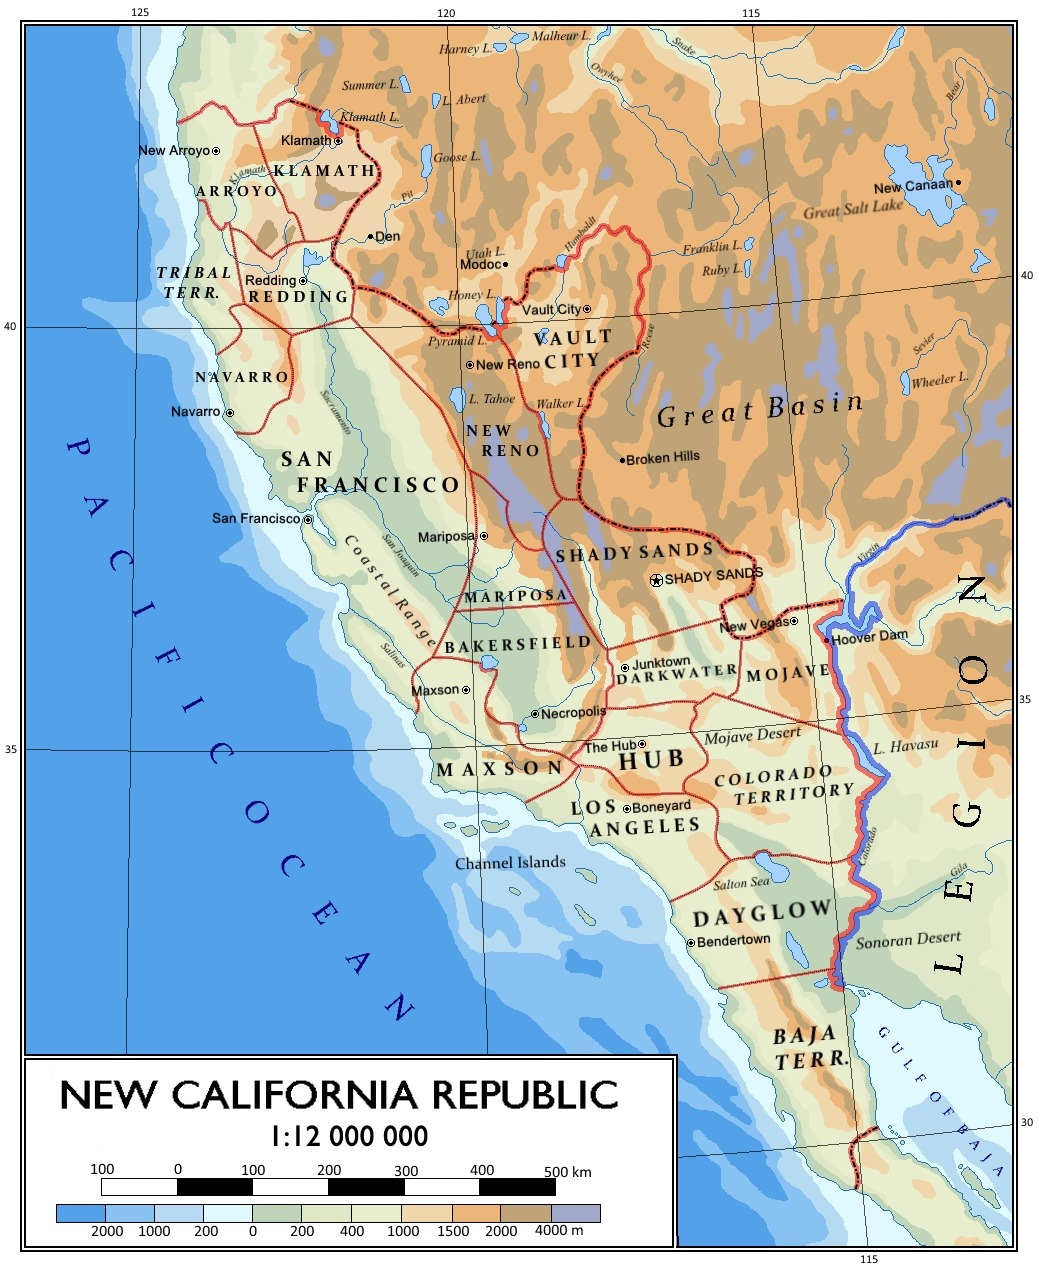 Tumblr Nkussffdodtfcnyqo California Road Map New California Republic - Map Of The New California Republic